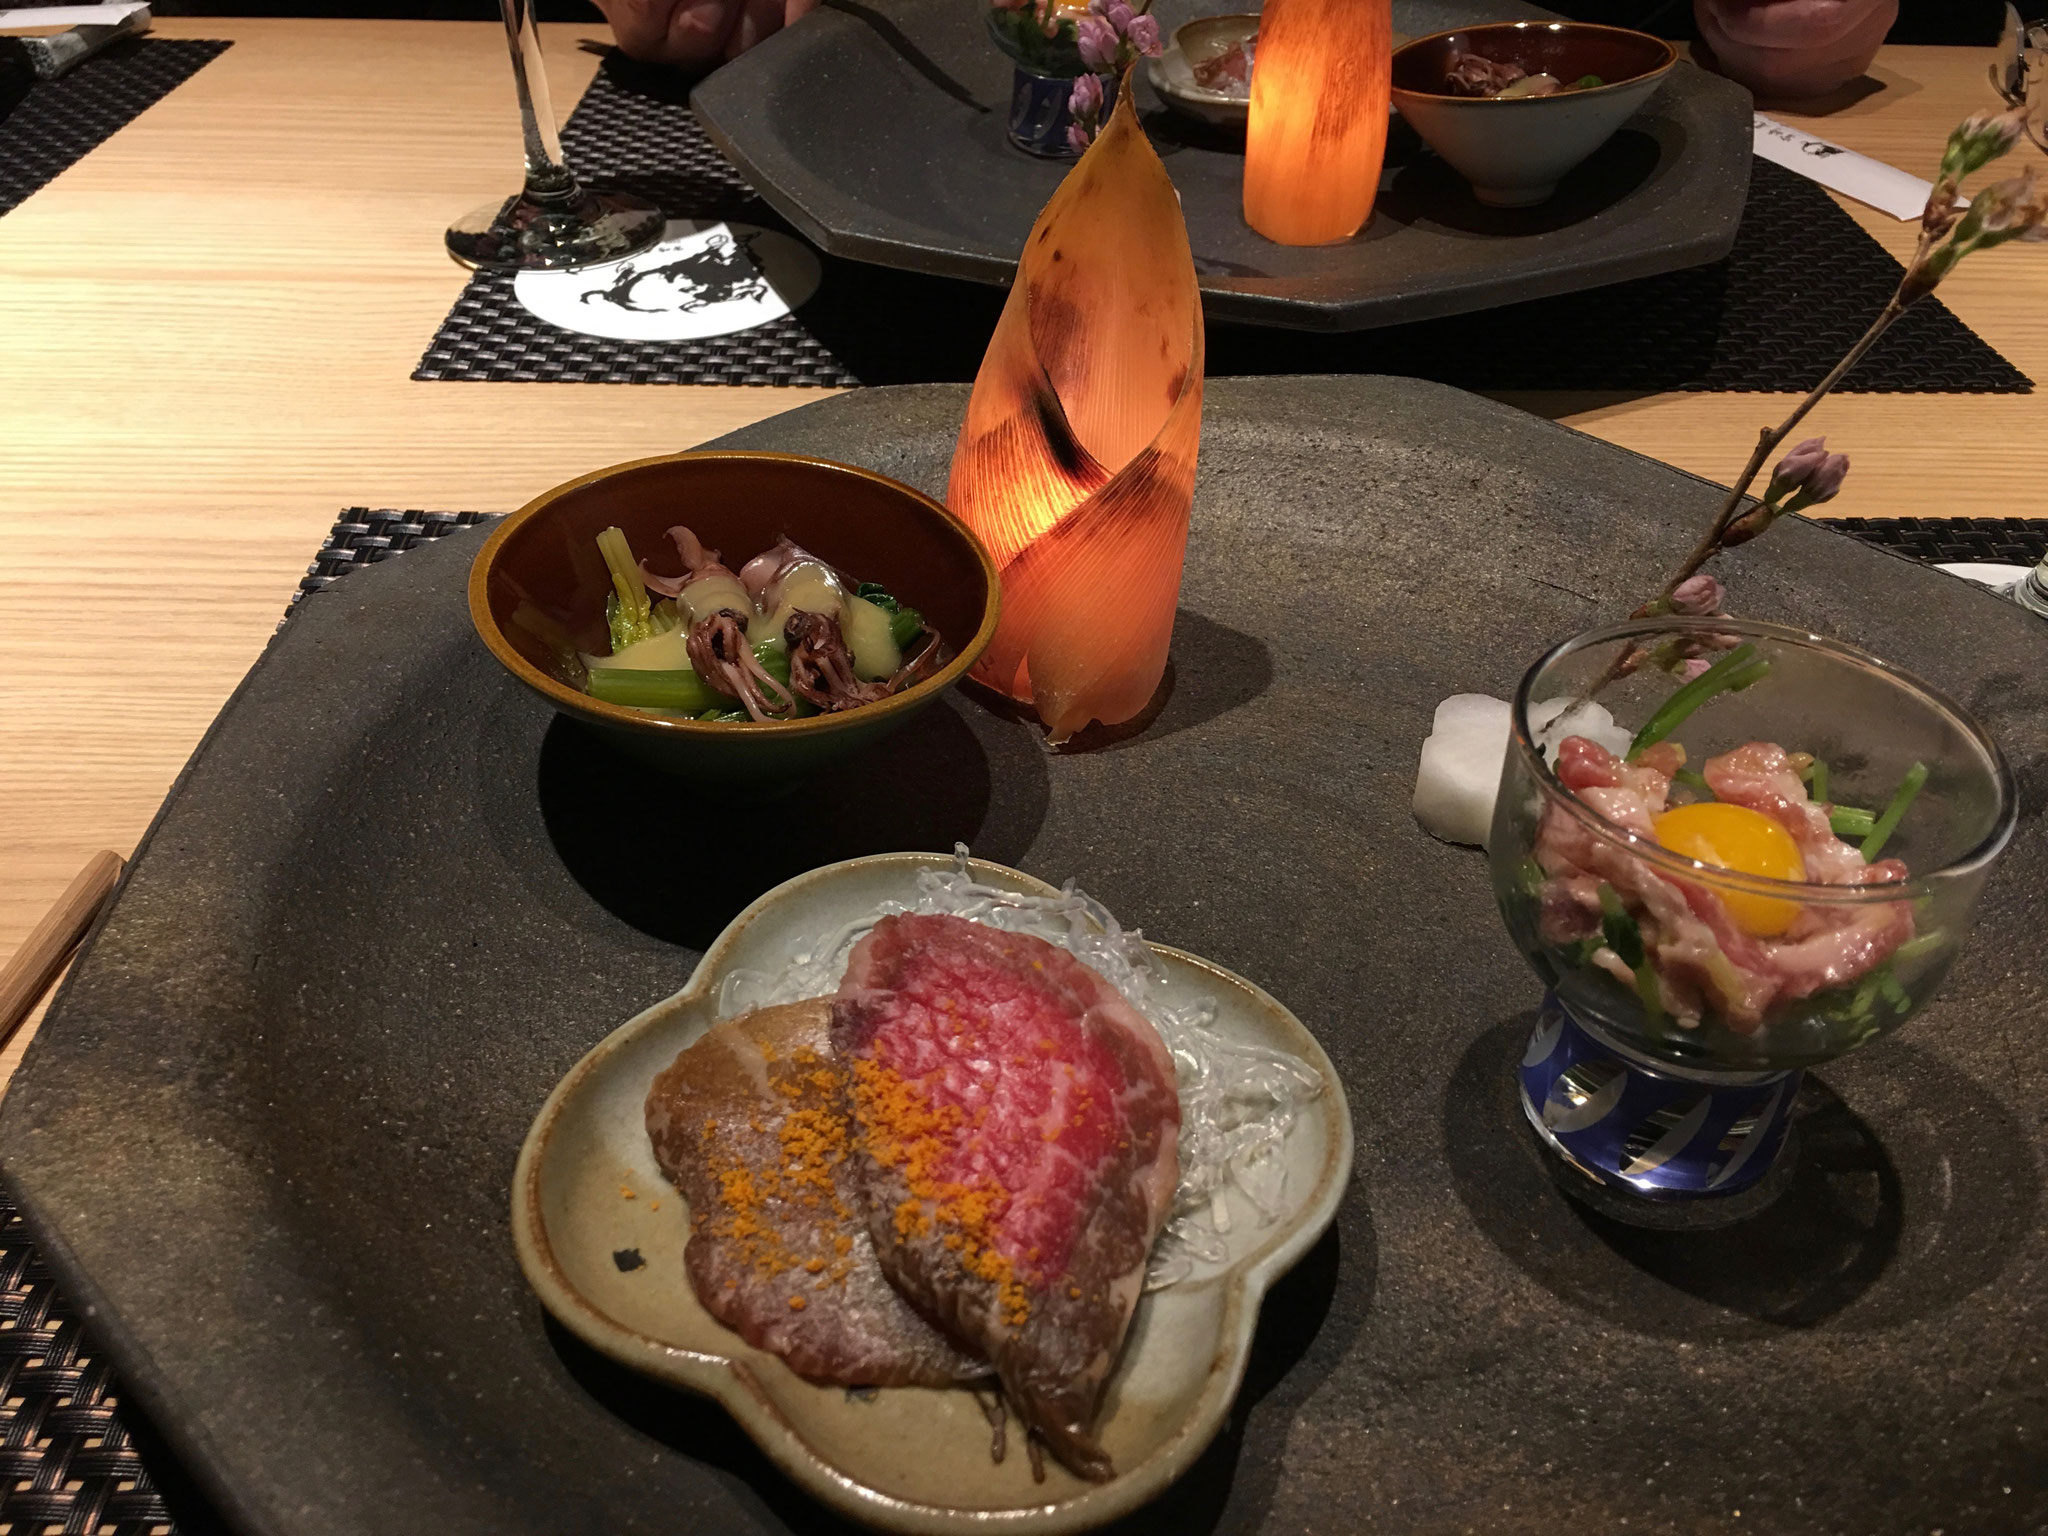 Raw beef, and baby squid at the restaurant.